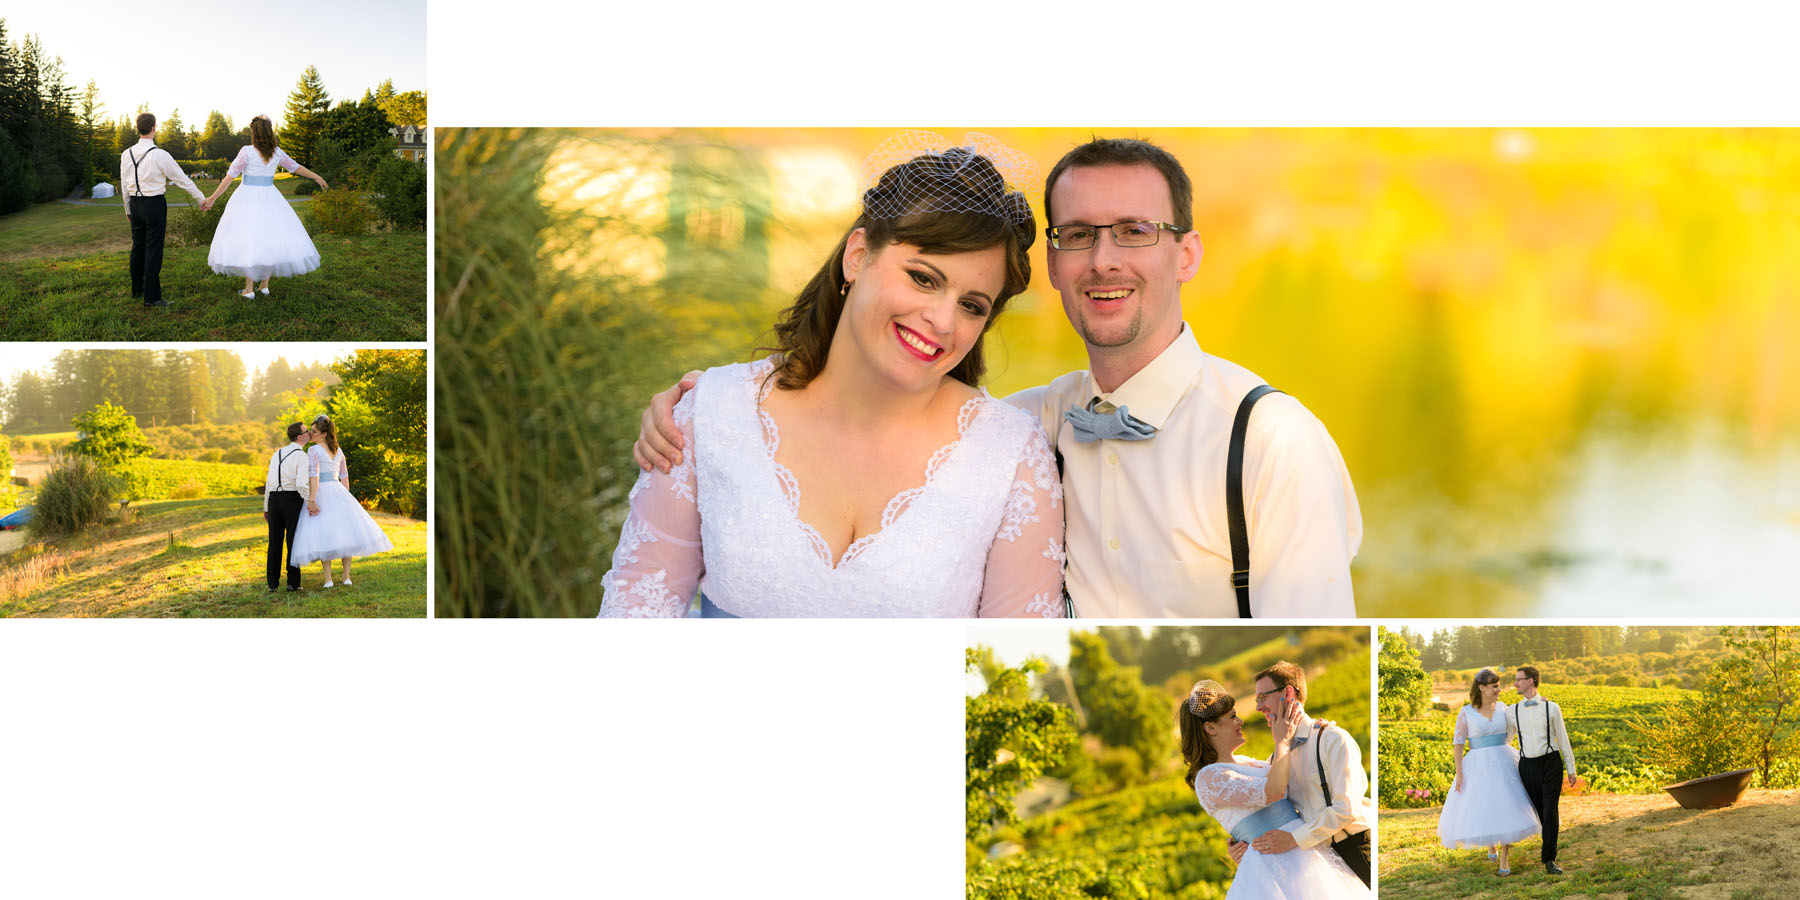 Bride and groom formal portraits - Private Estate wedding in Sebastopol, CA - by Bay Area wedding photographer Chris Schmauch